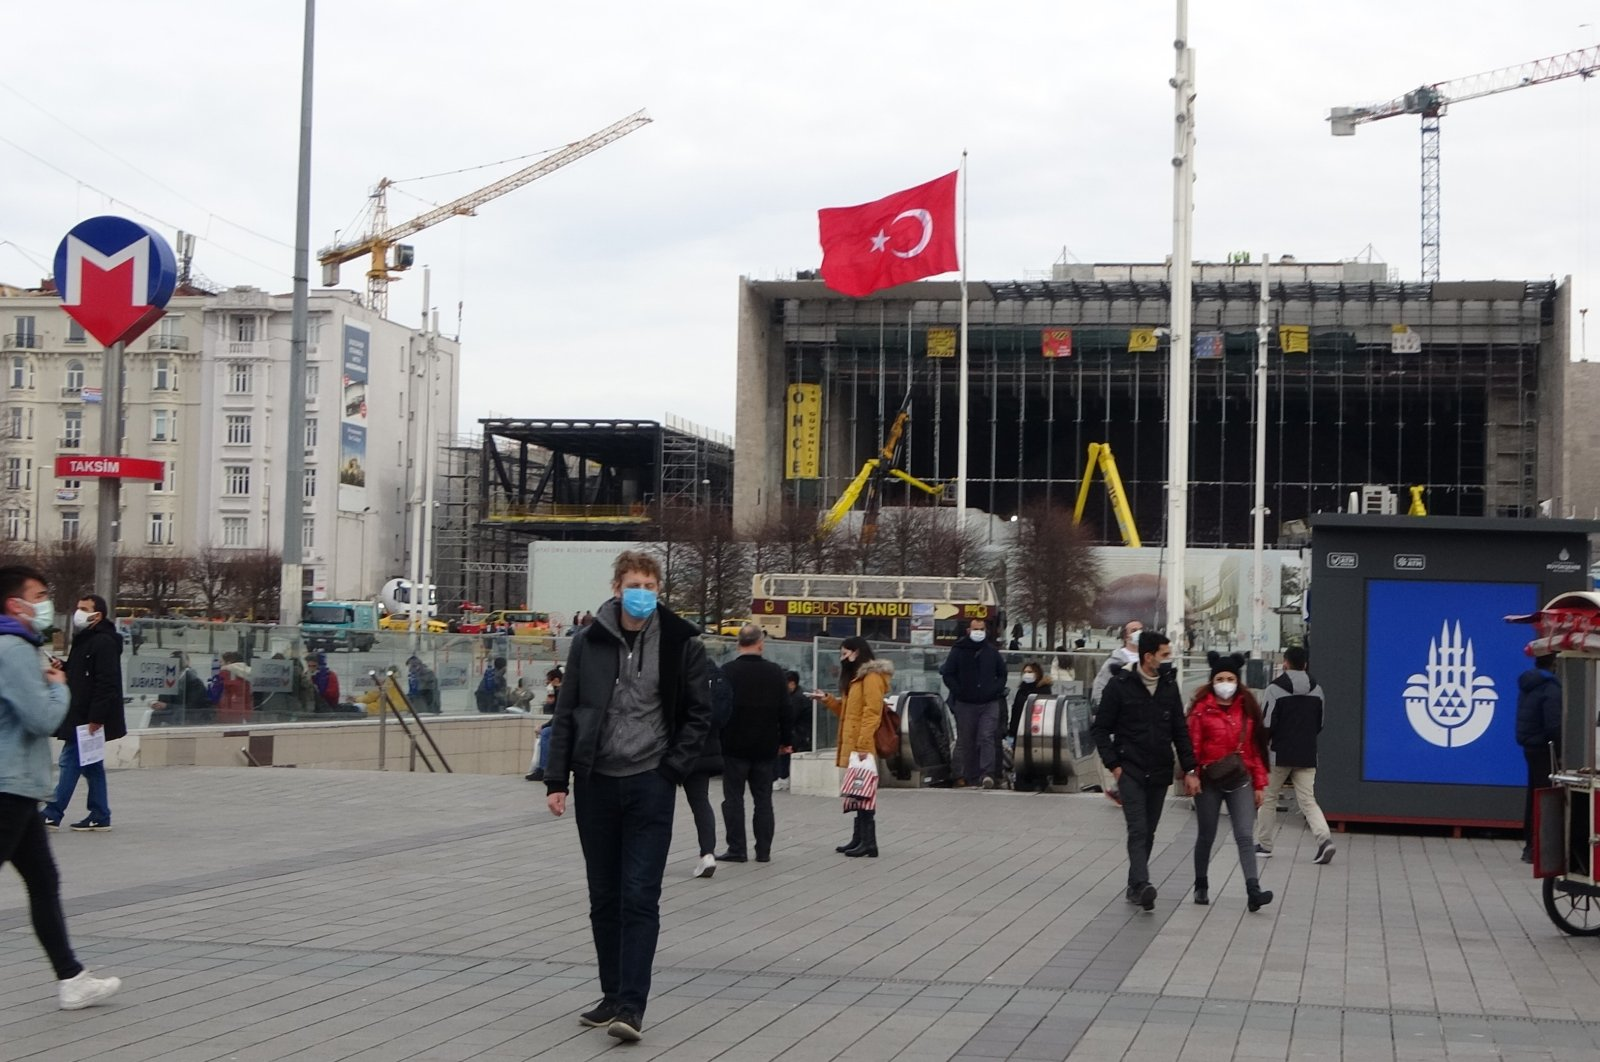 People wearing masks walk in Istanbul's Taksim Square, Turkey, Feb. 1, 2021. (IHA Photo)